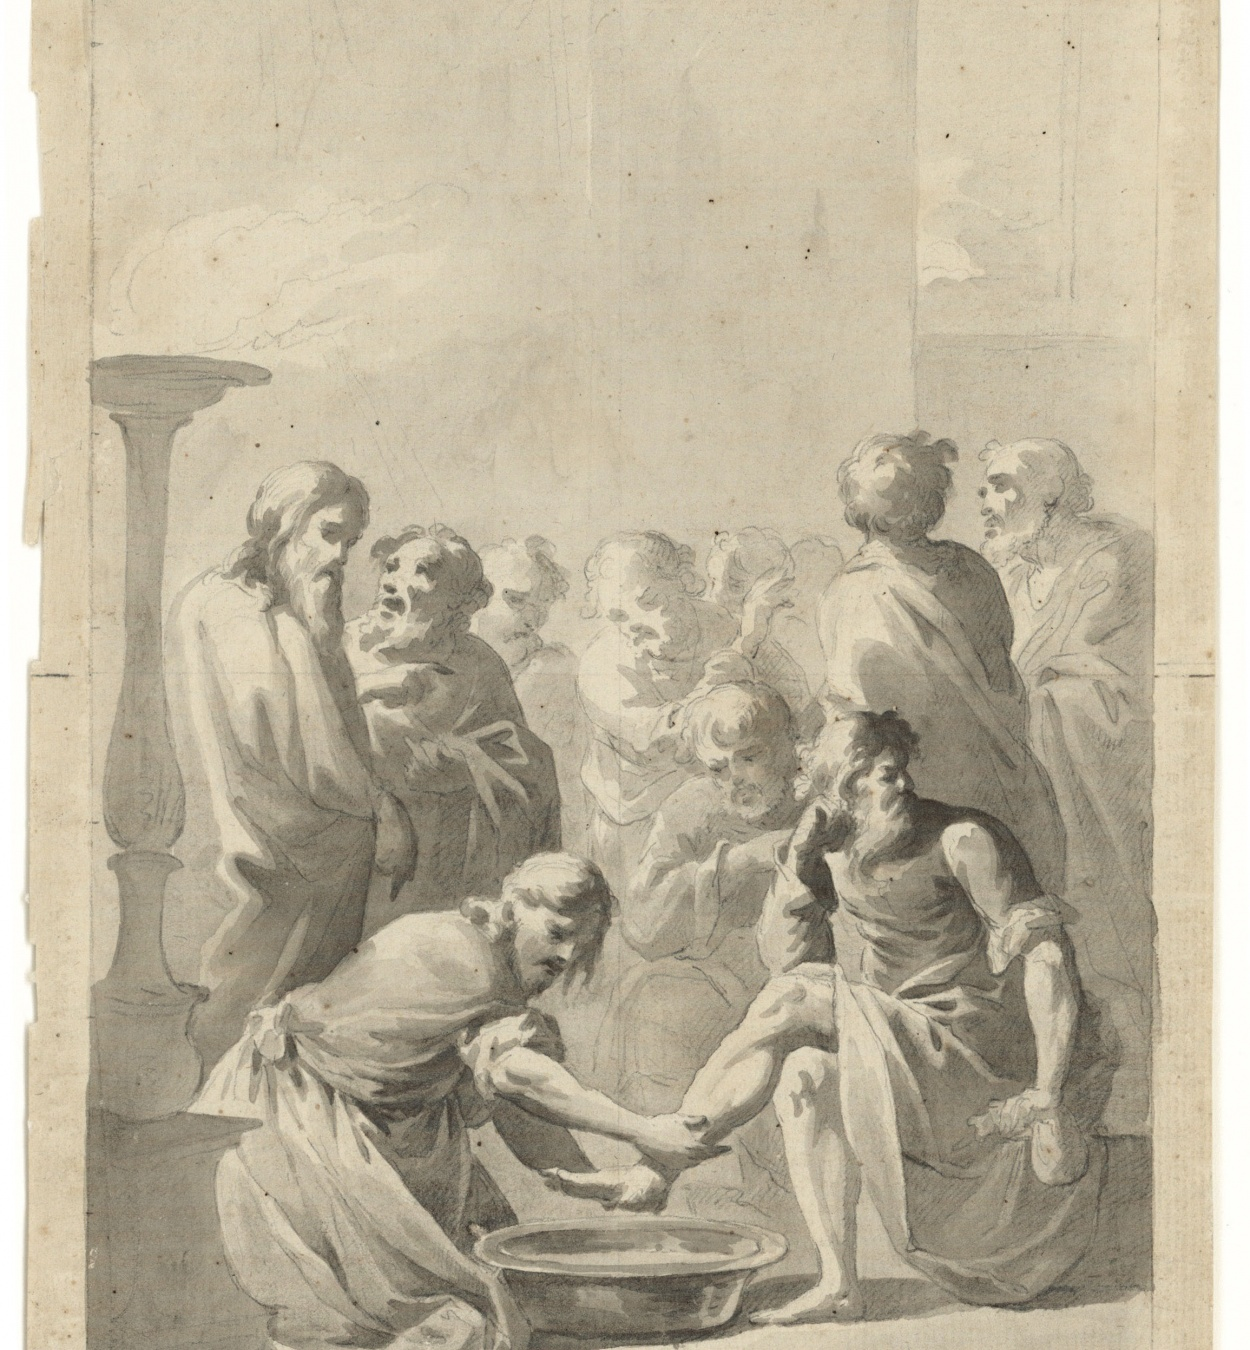 Pere Pau Montaña Llanas - The Washing of the Feet - 1780